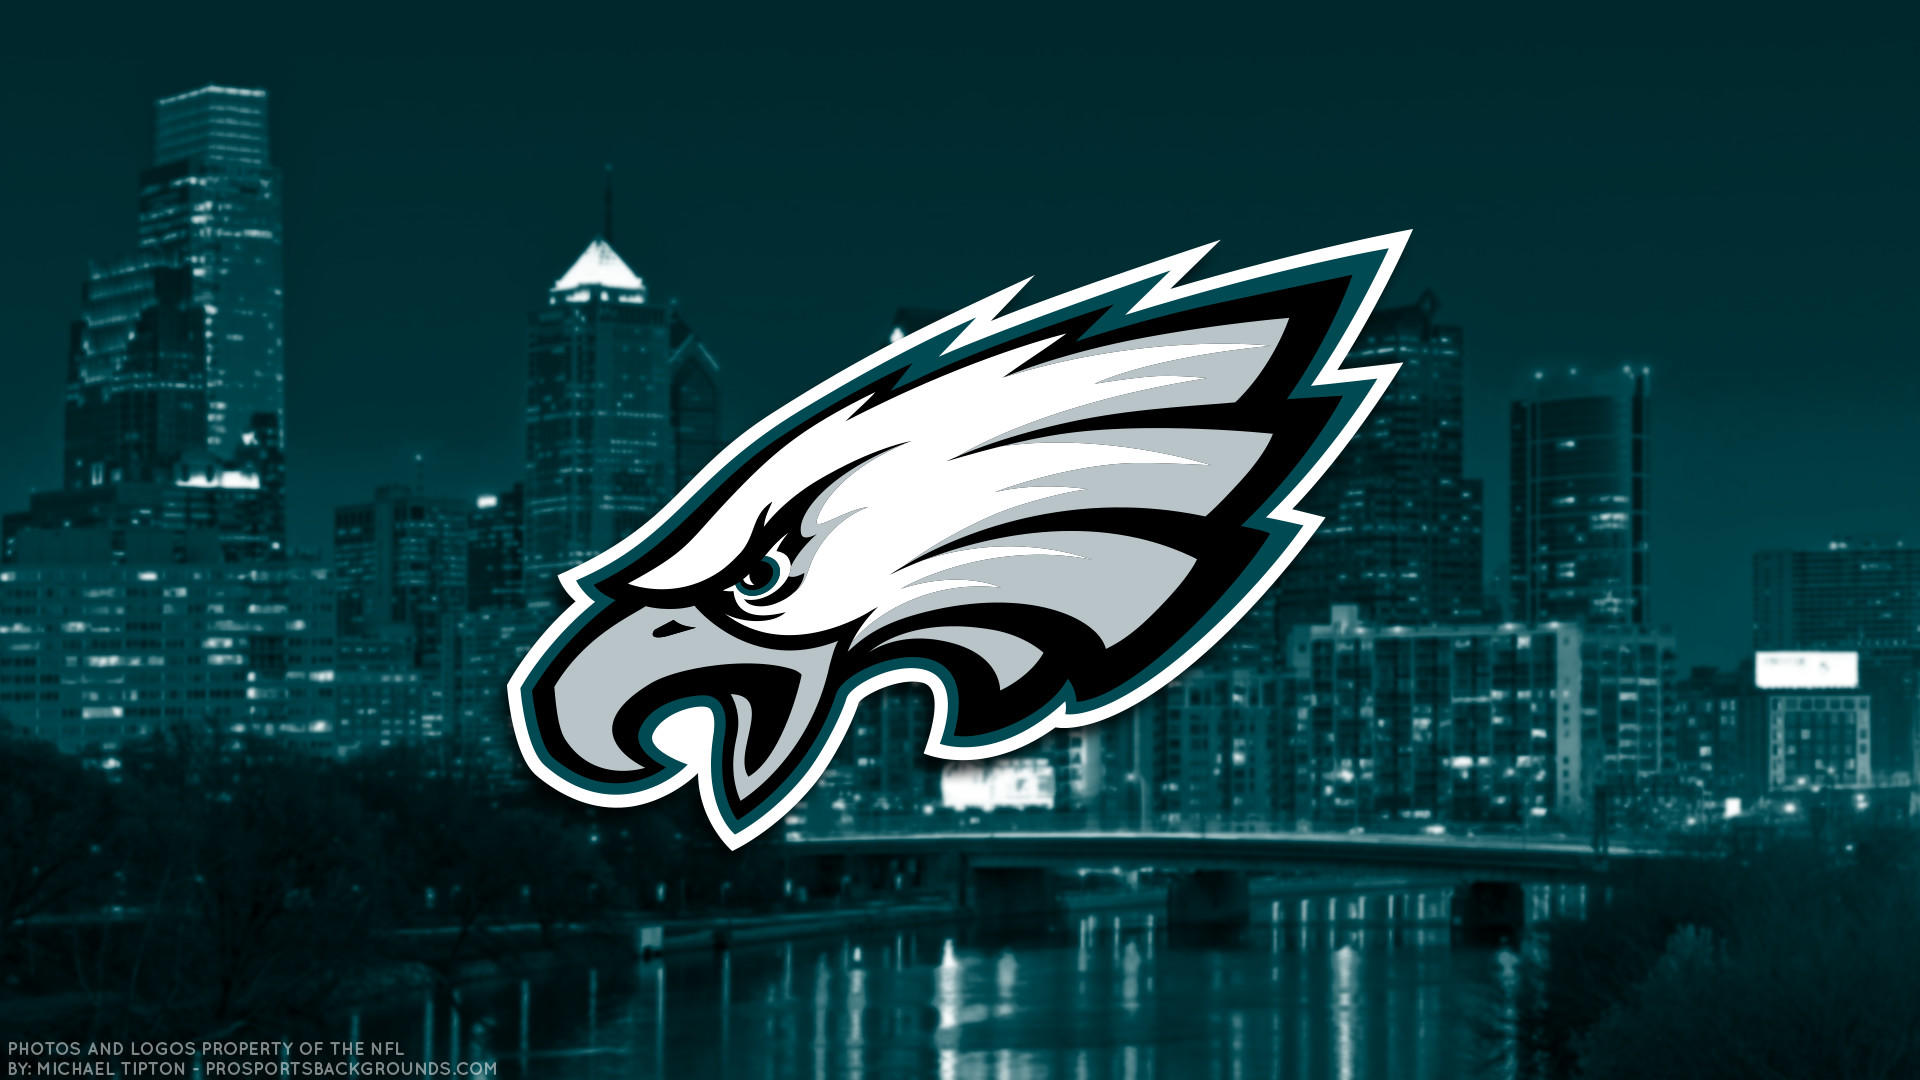 Sixers Wallpaper Iphone X Nfl Eagles Wallpapers 183 ① Wallpapertag